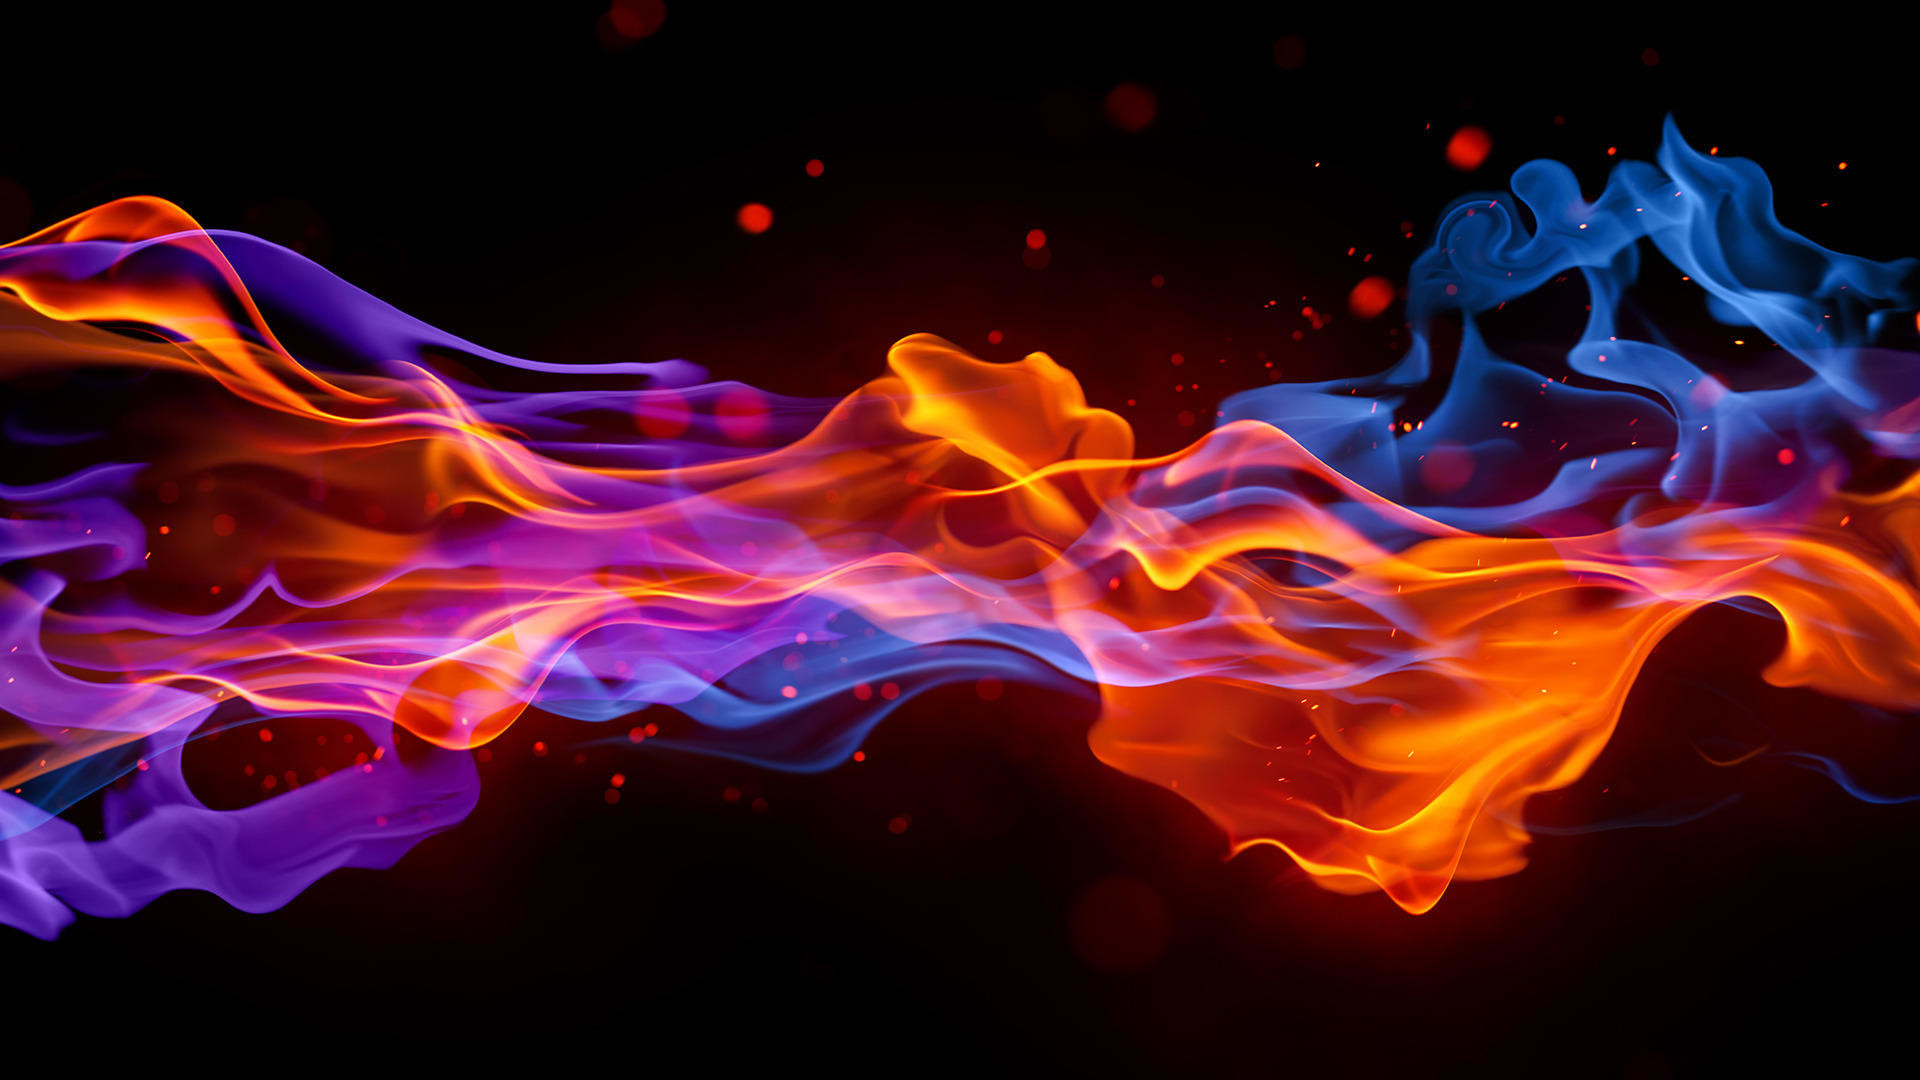 Awesome Fire Backgrounds Wallpaper 1440×810 Awesome Wallpapers (35  Wallpapers)   Adorable Wallpapers